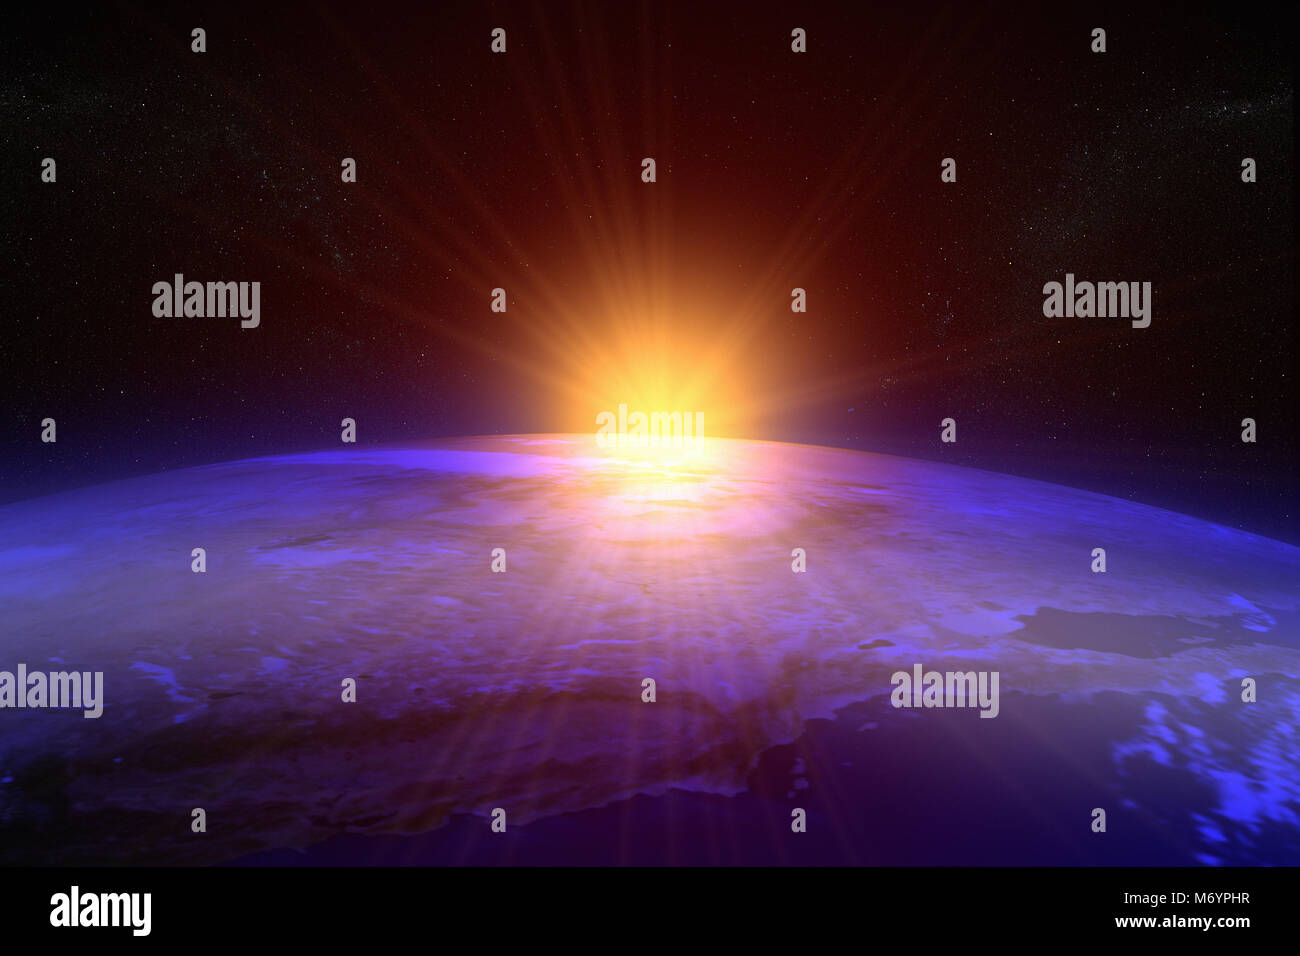 3D rendering of a sunset / sunrise from space - Stock Image